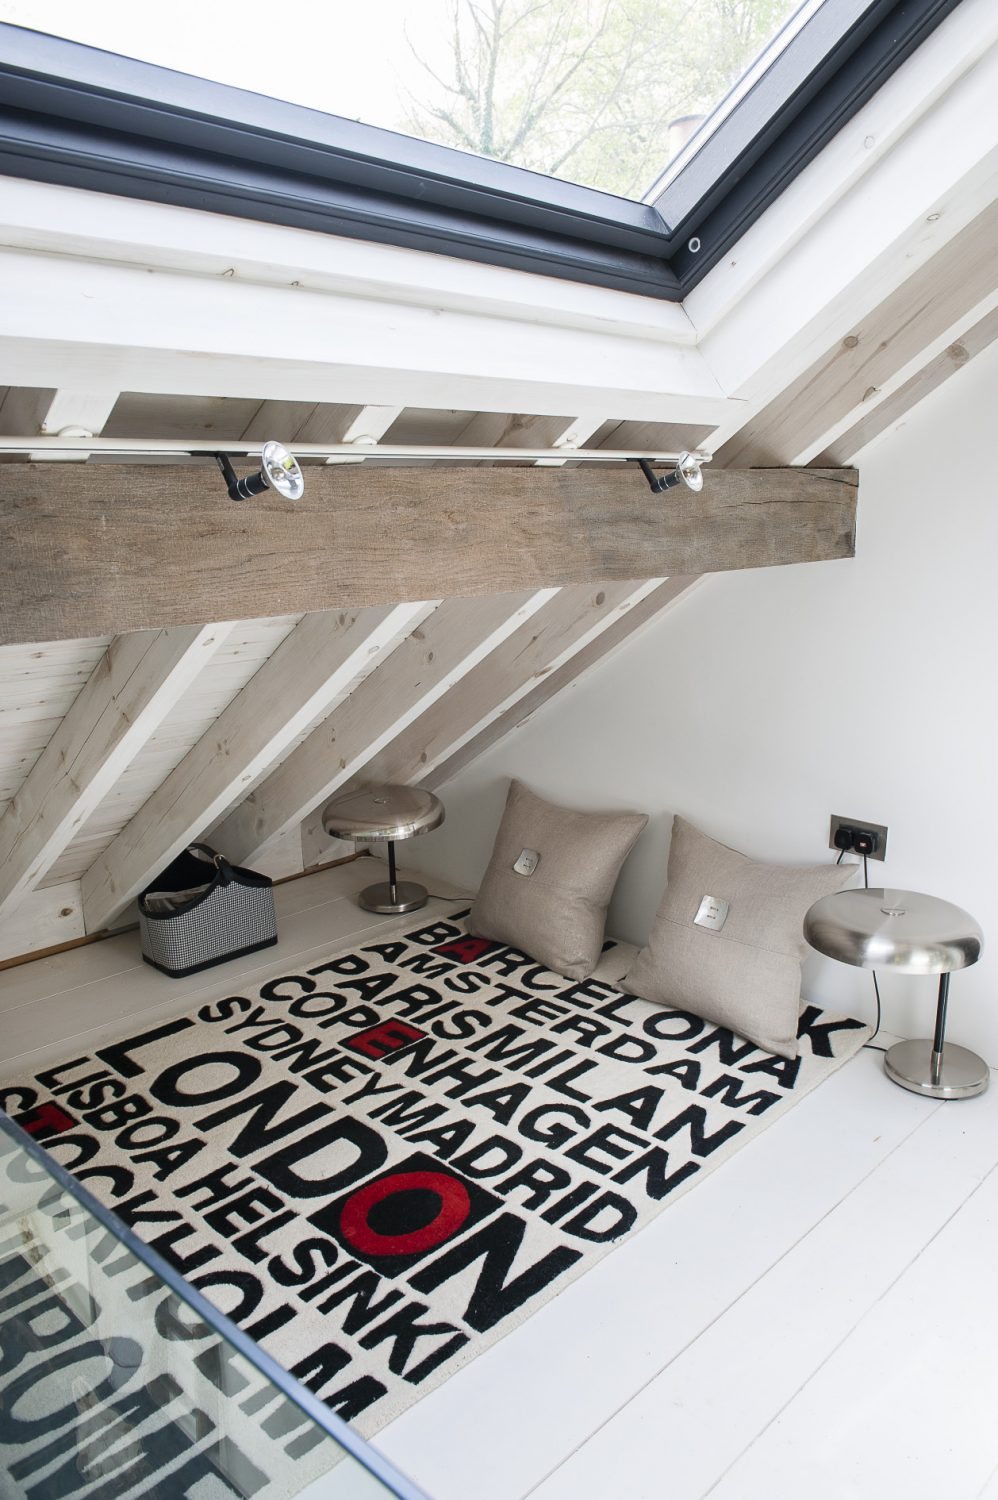 The couple have carefully considered every inch of space – a secluded area for relaxation nestles snugly in the eaves at the top of the house